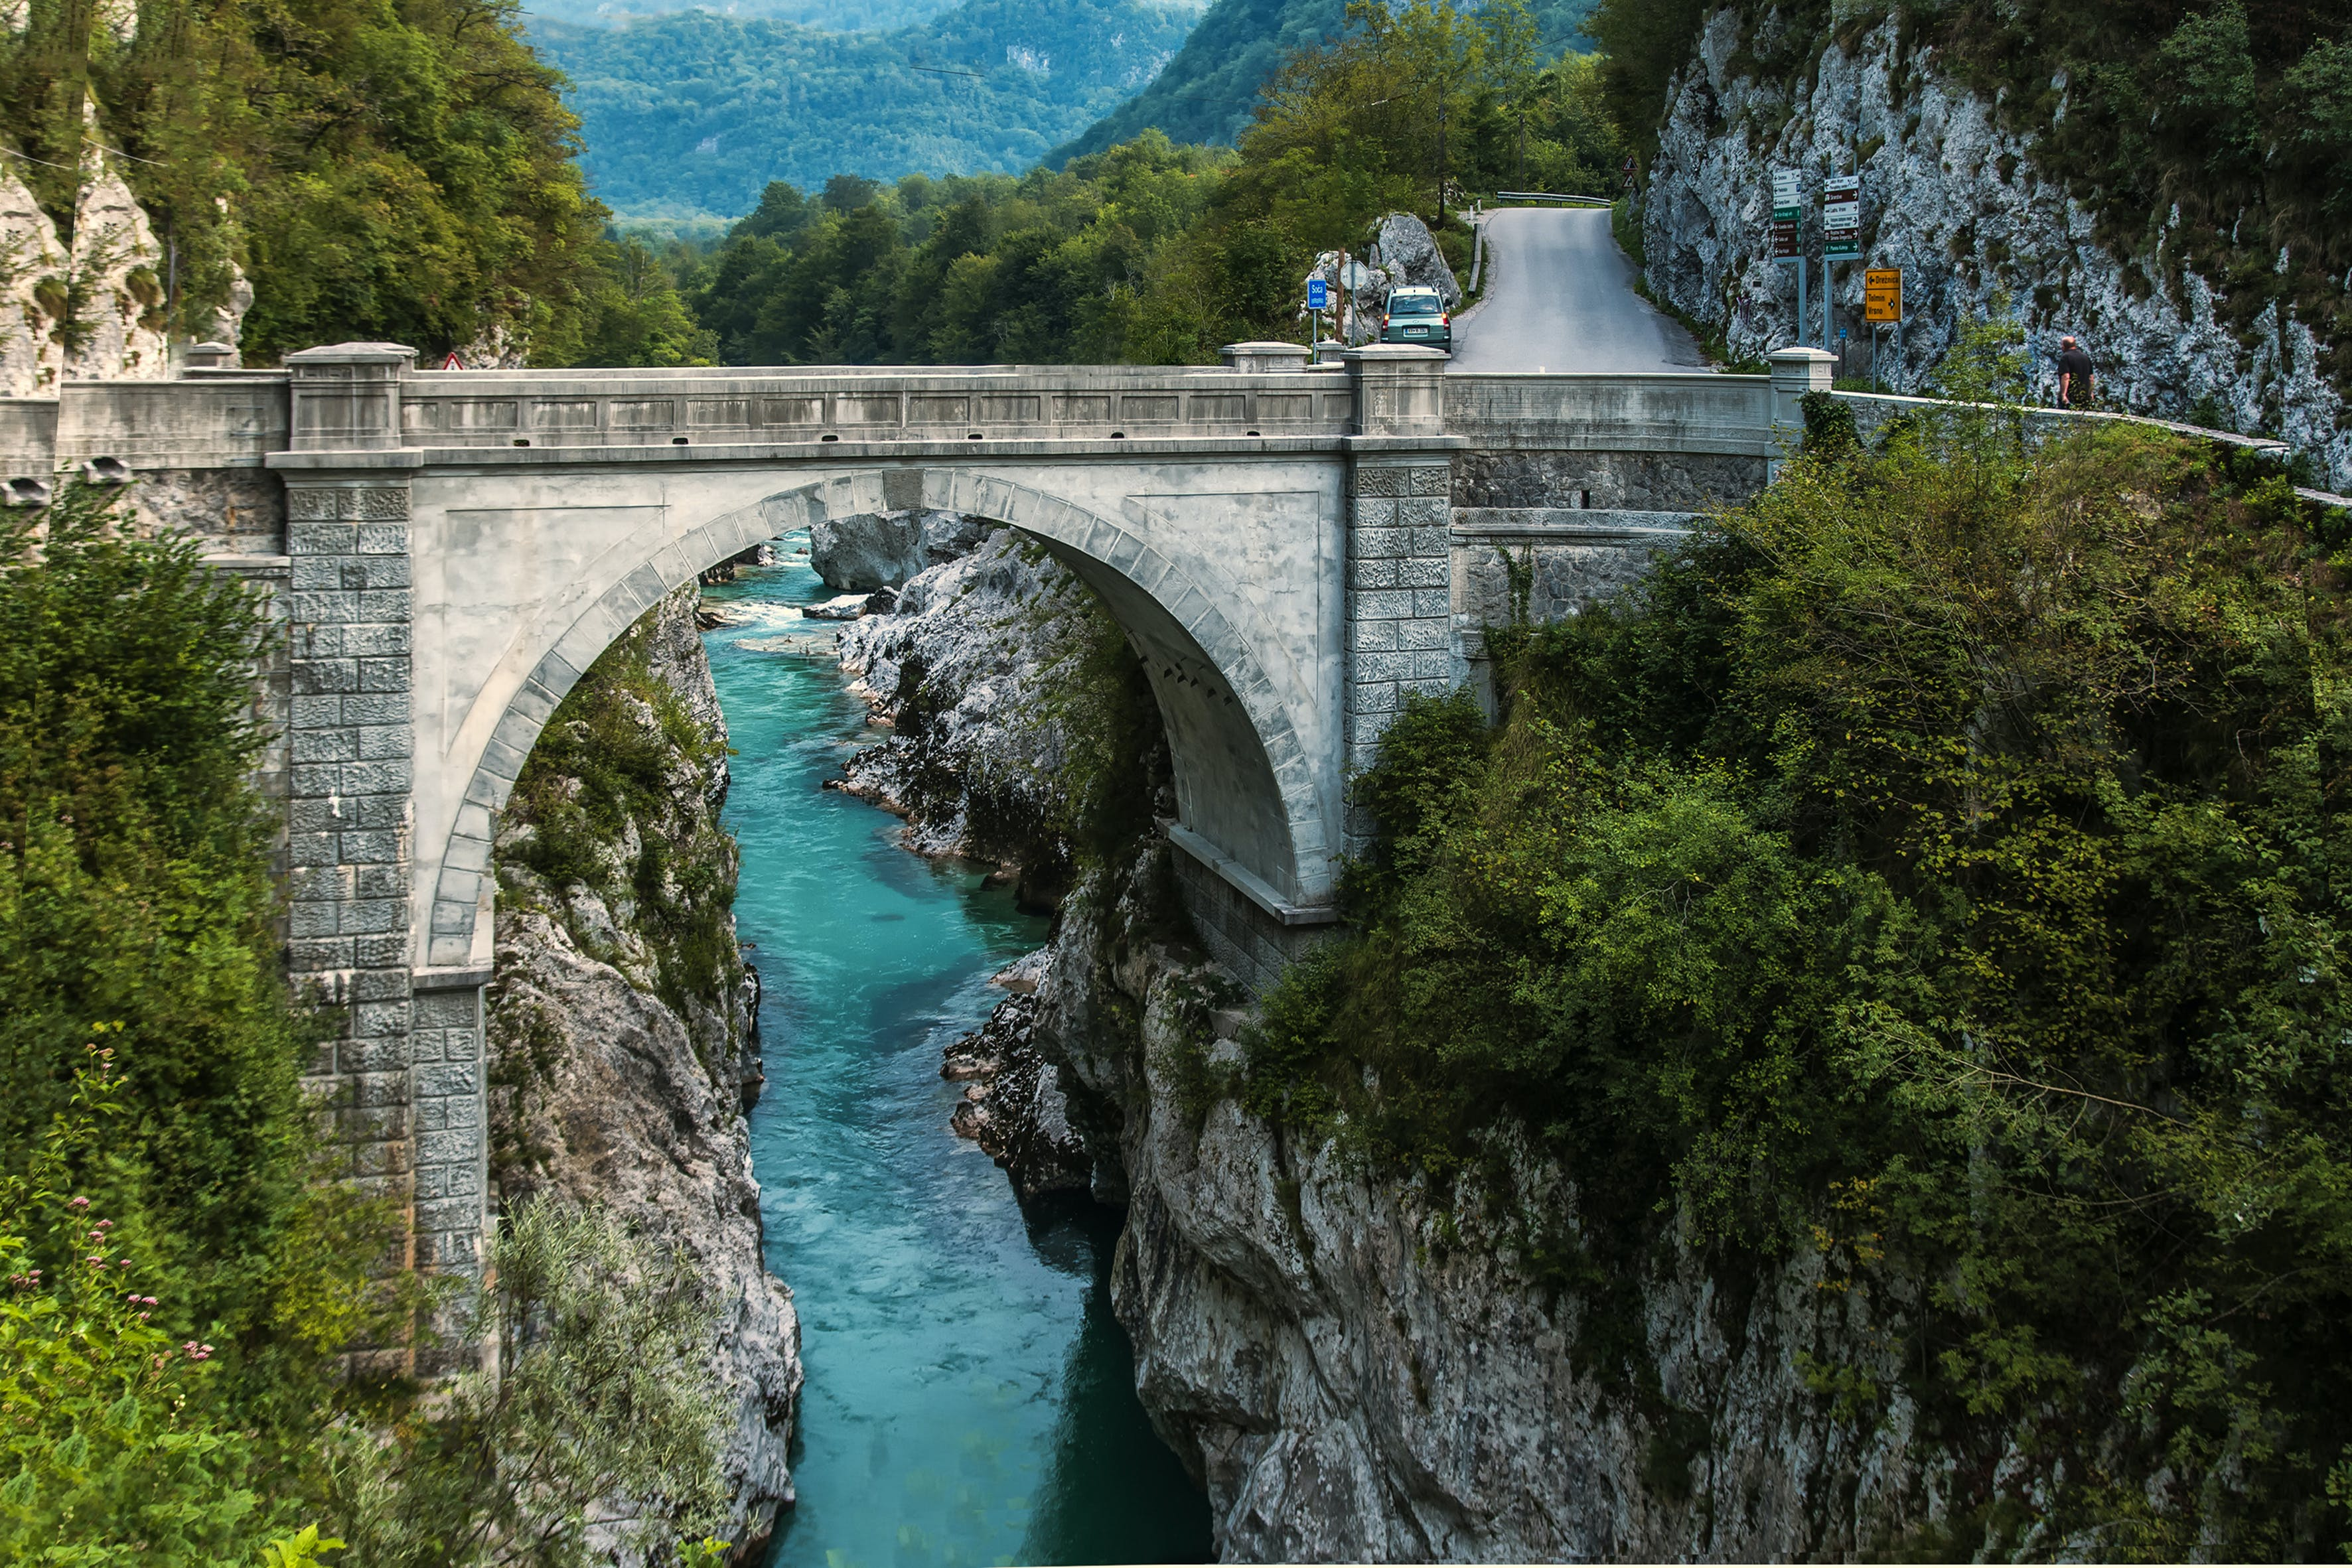 Concrete Bridge over Clear Blue River Beside Mountain